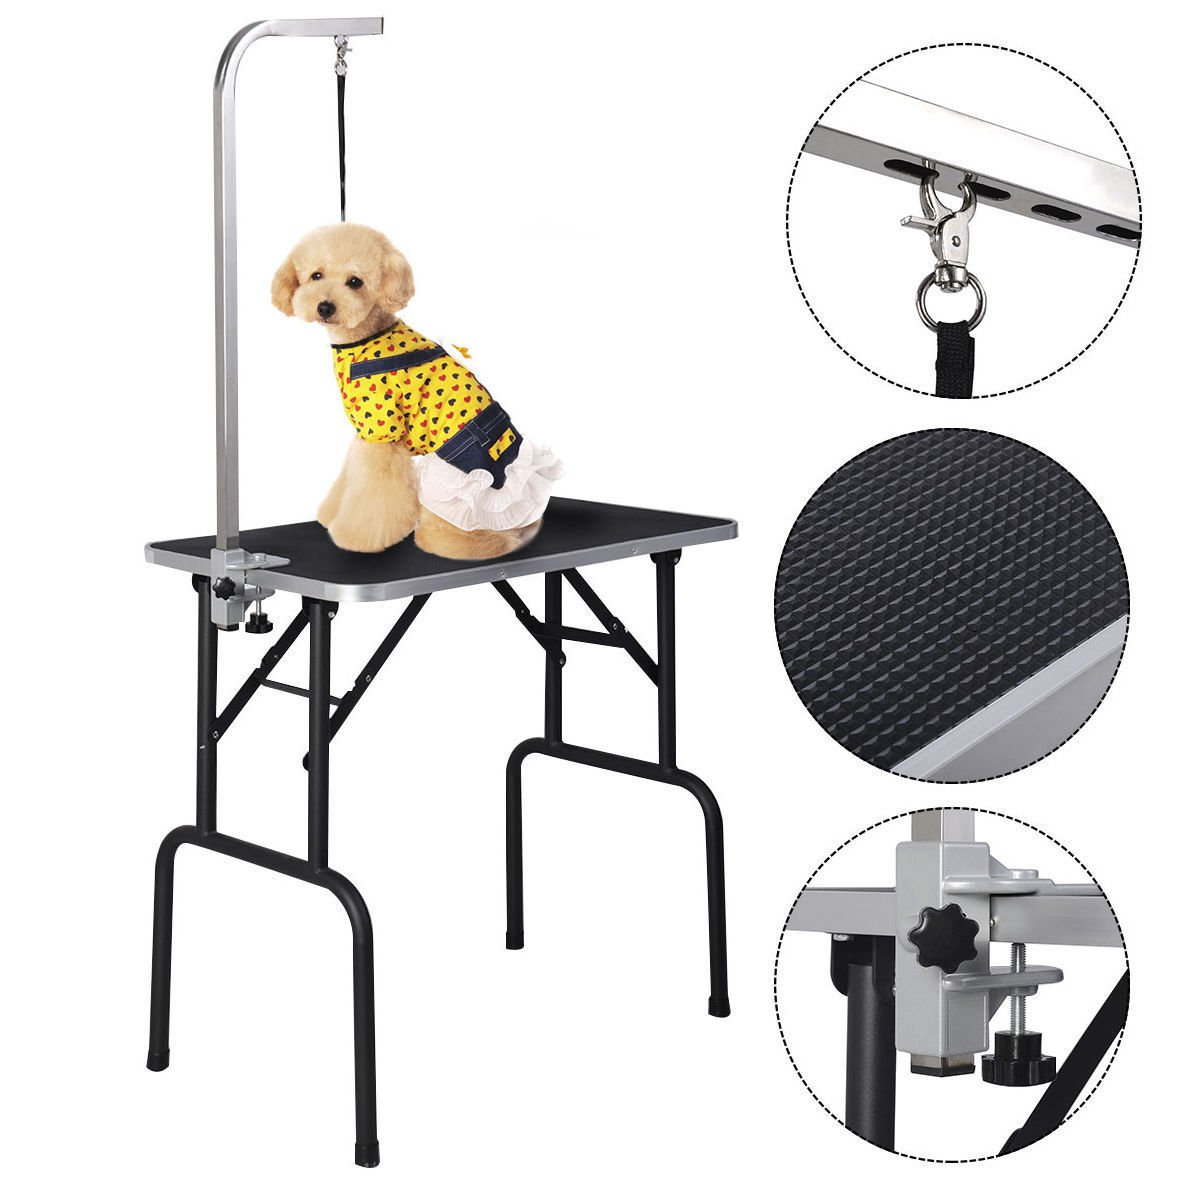 Adjustable Grooming Table Foam Top for Pets Dogs Cats with Arm and Noose and Rubber Mat 32''